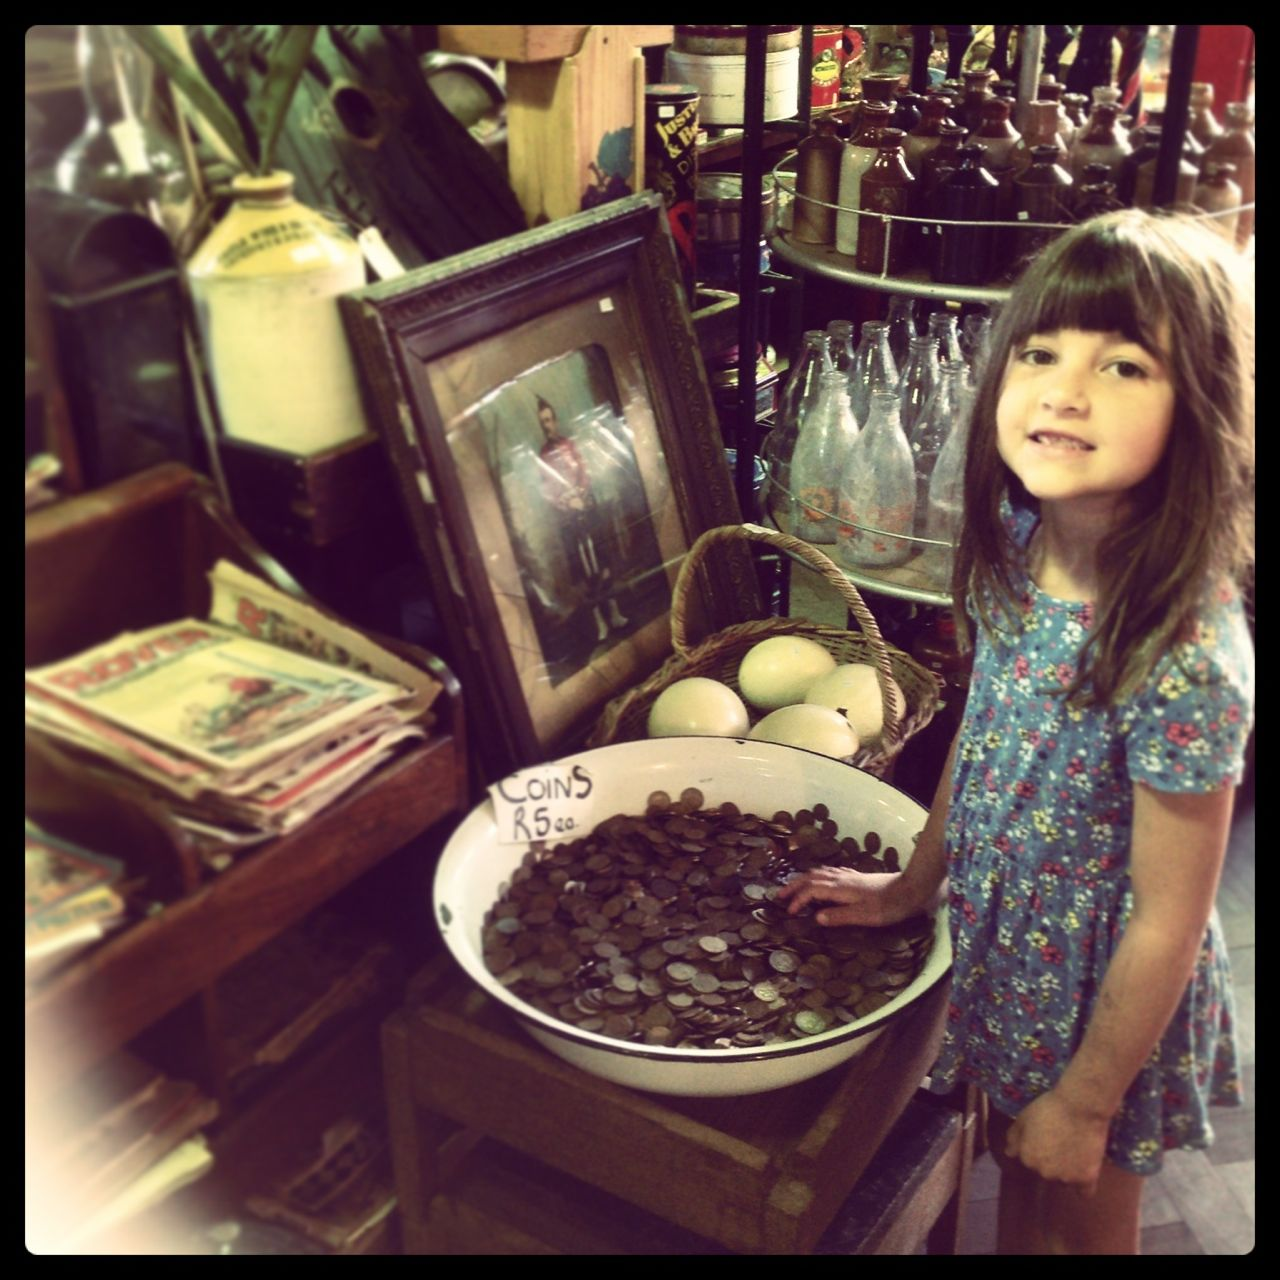 One of the interesting antique shops in Kalk Bay… we could browse in there for hours!